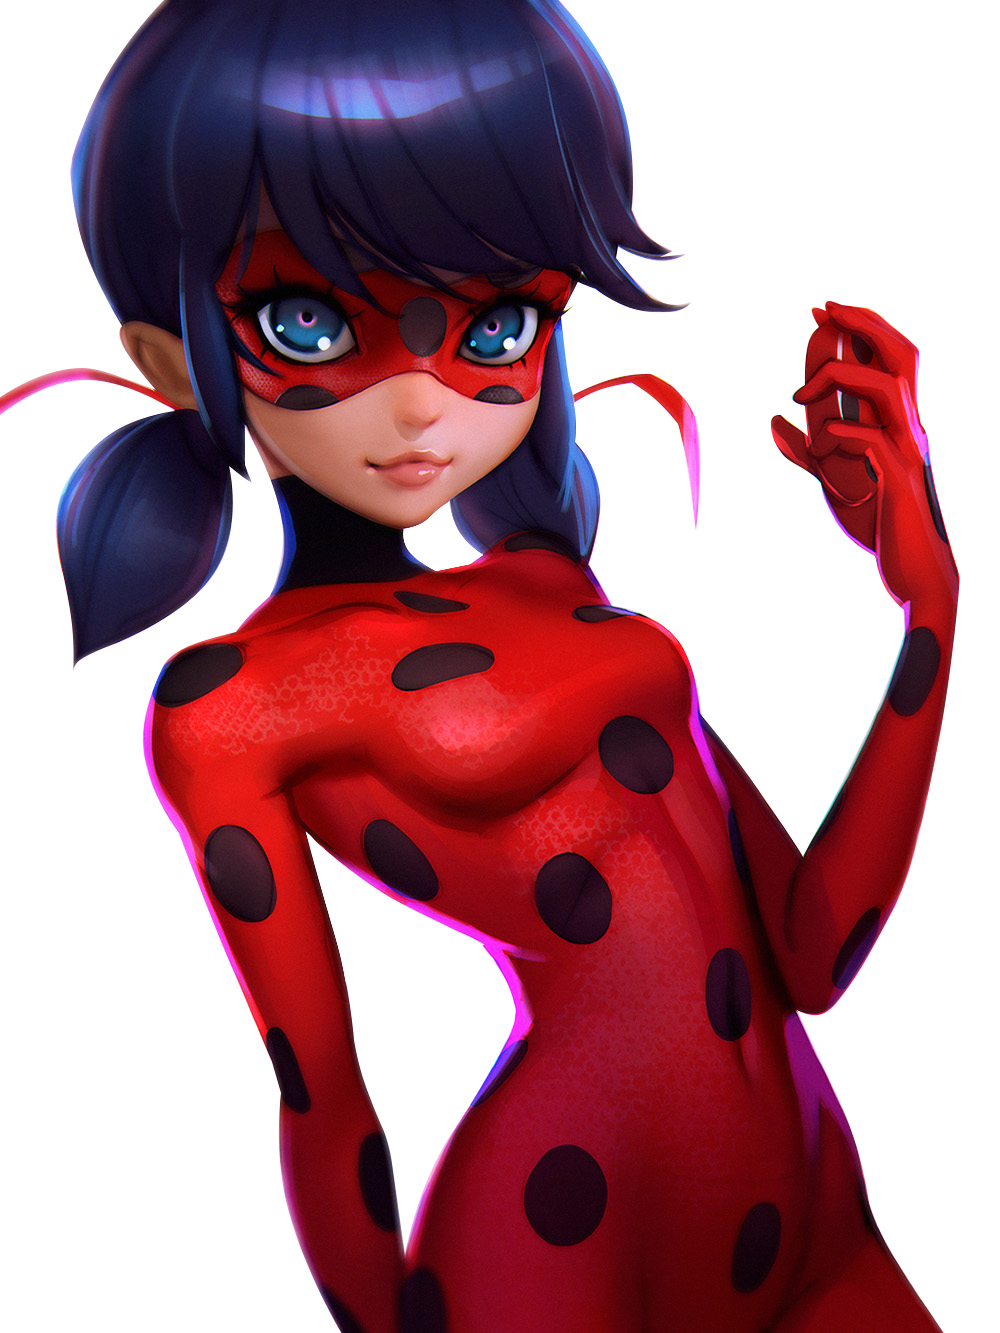 Pin by 🌠Jinx🌠 on Miraculus LadyBug in 2019 | Miraculous